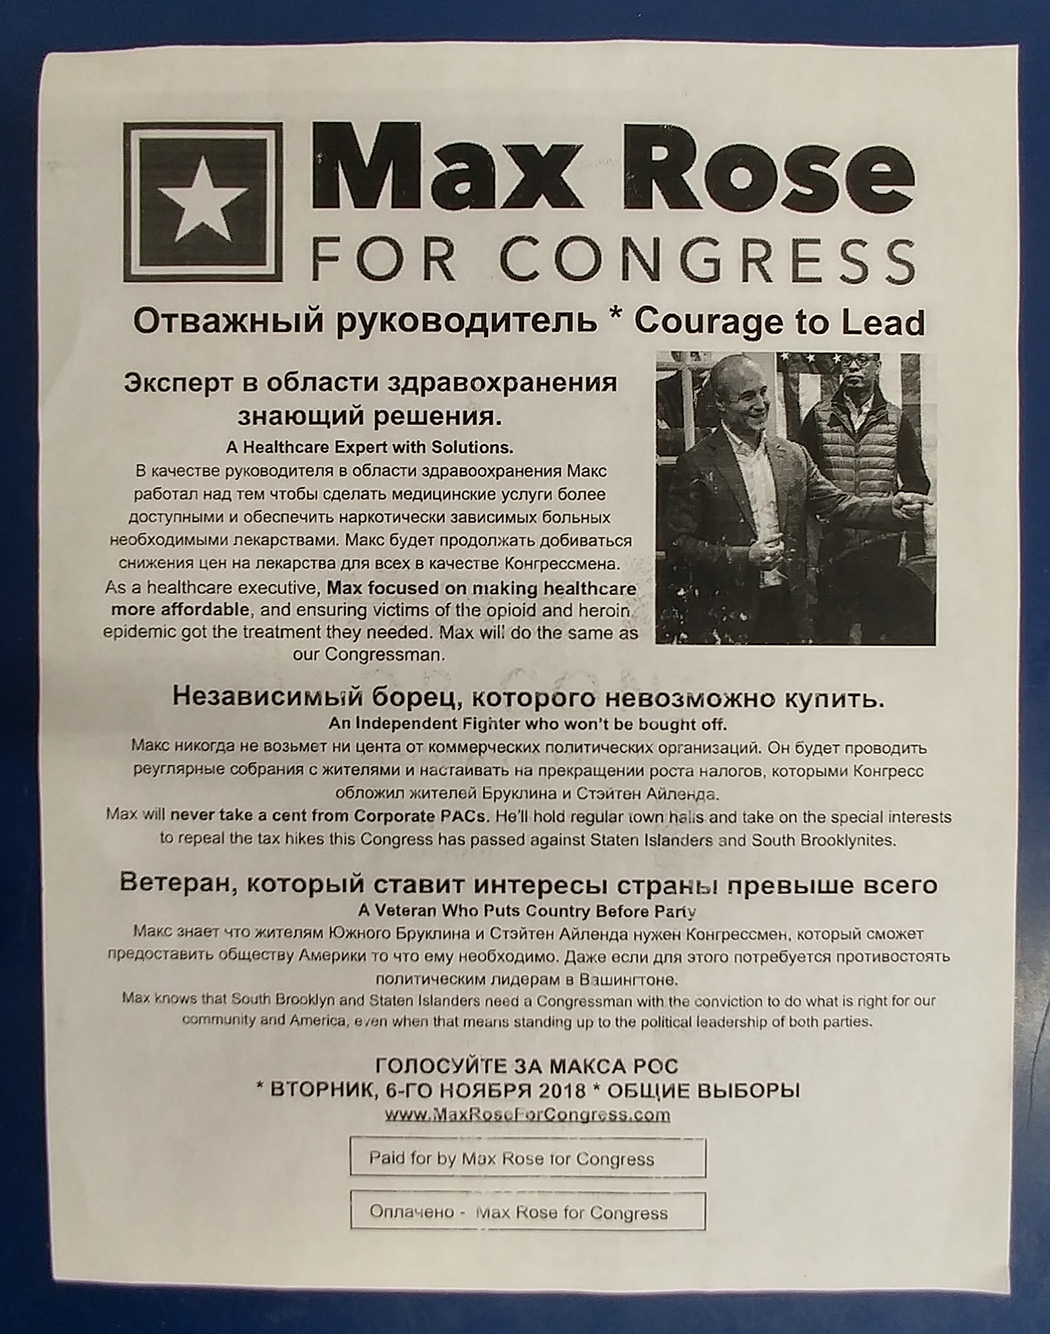 Max Rose for Congress campaign literature translated in Russian.